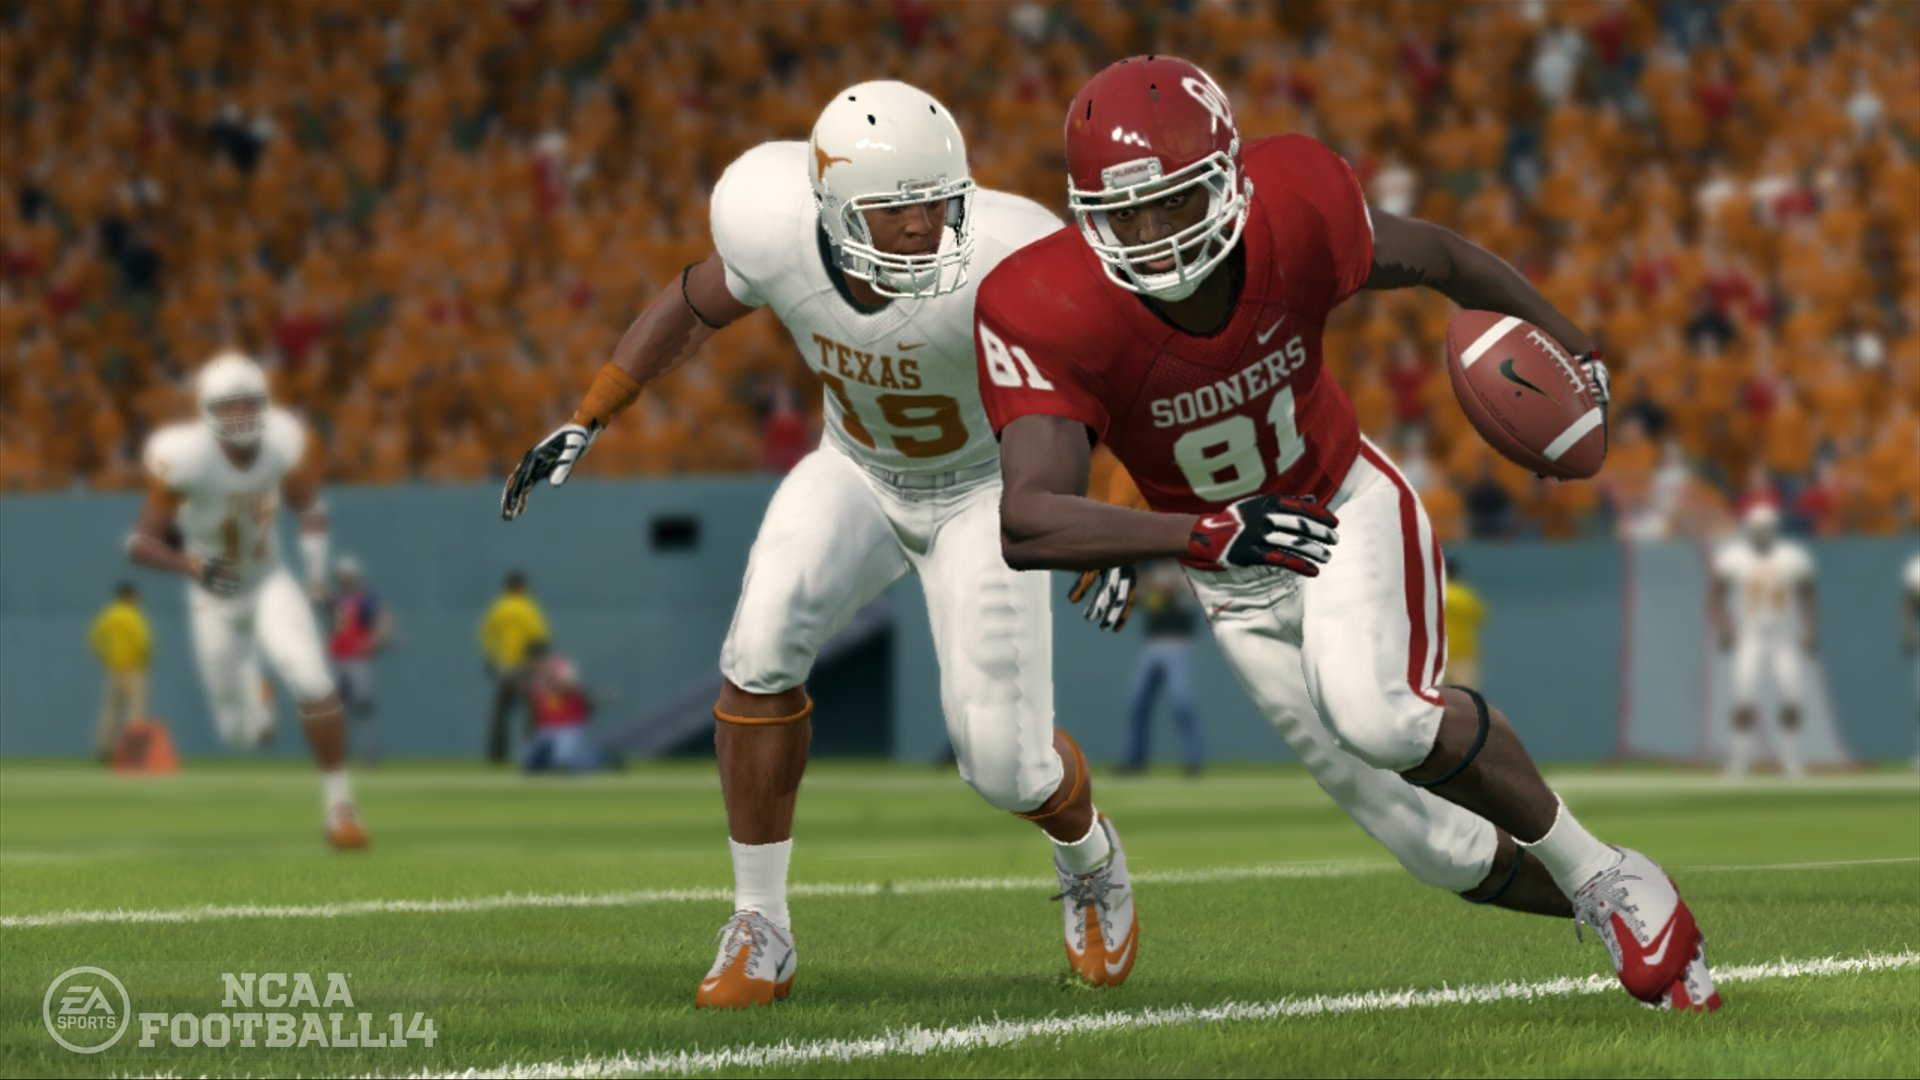 20/4/2013 - NCAA 14 - Screen 2